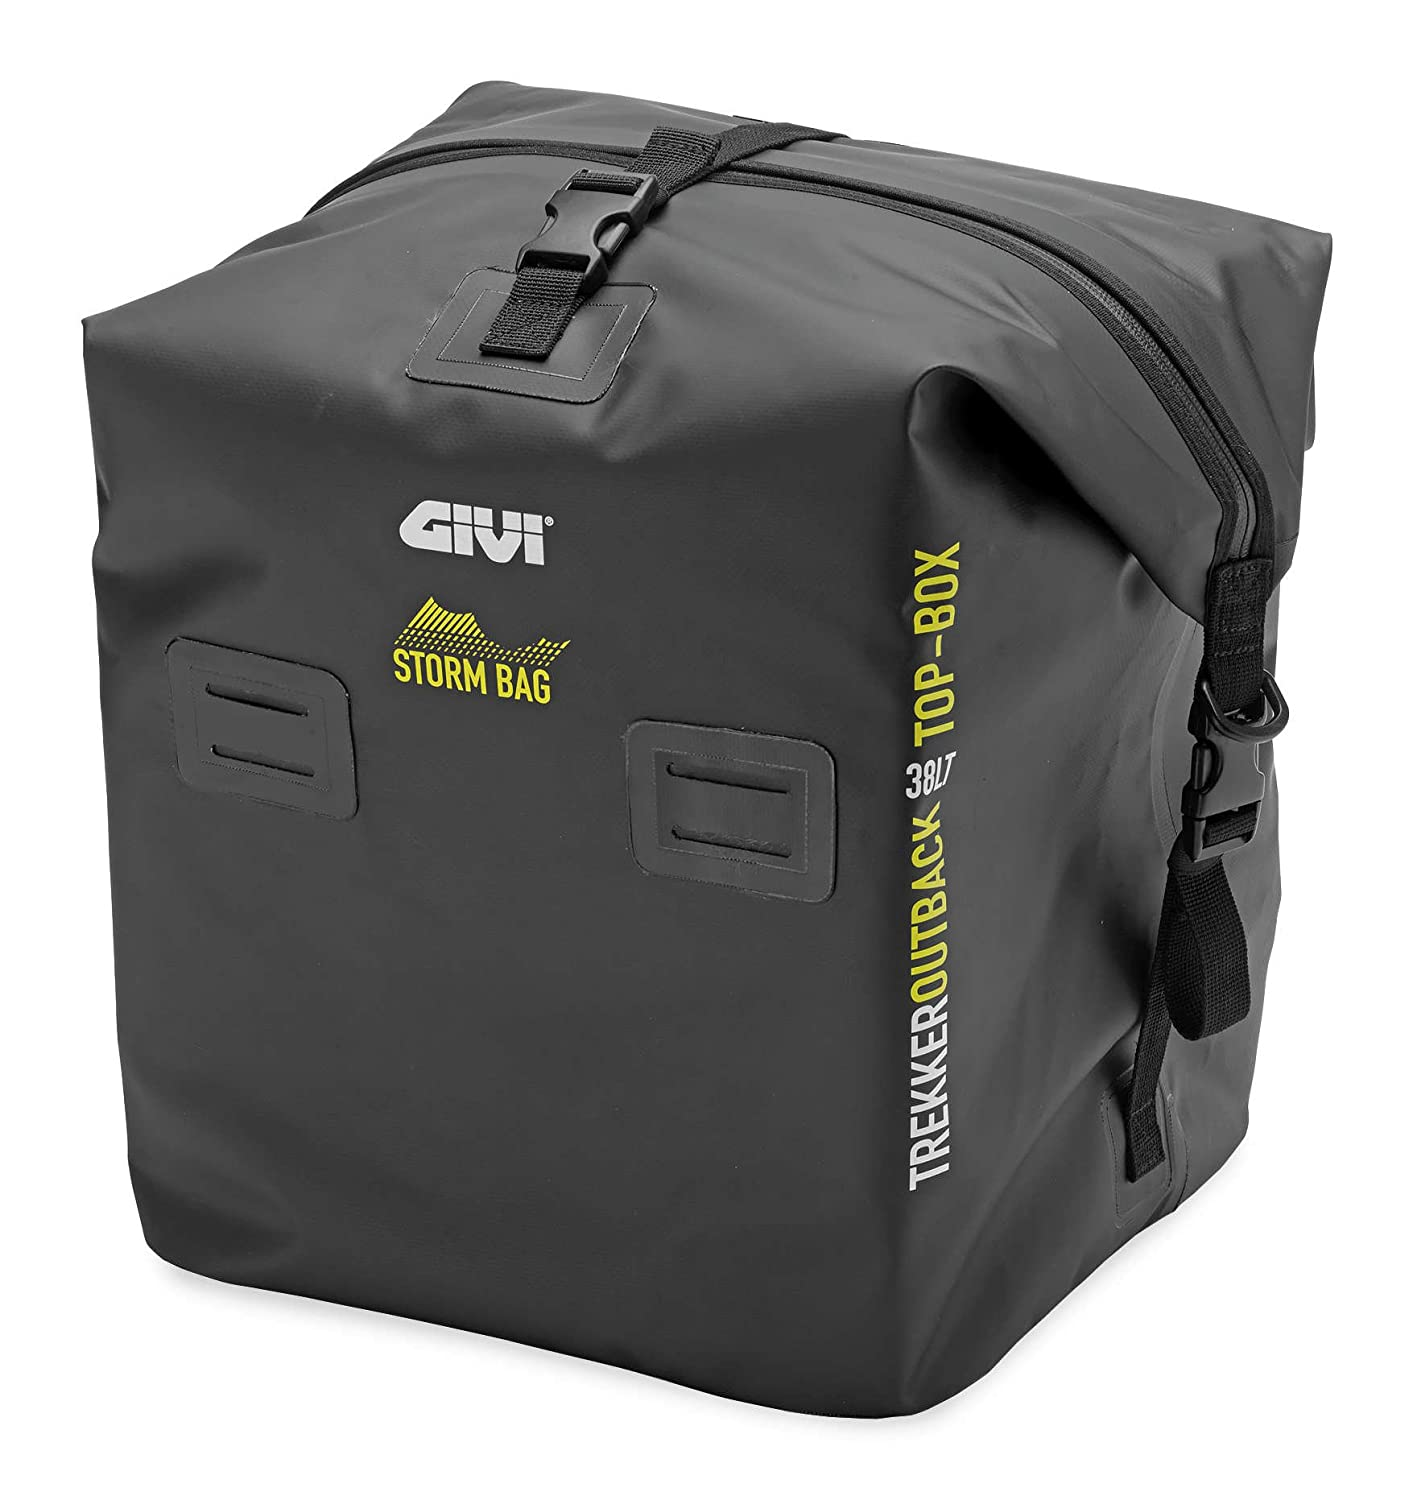 Borsa Interna Waterproof per Givi